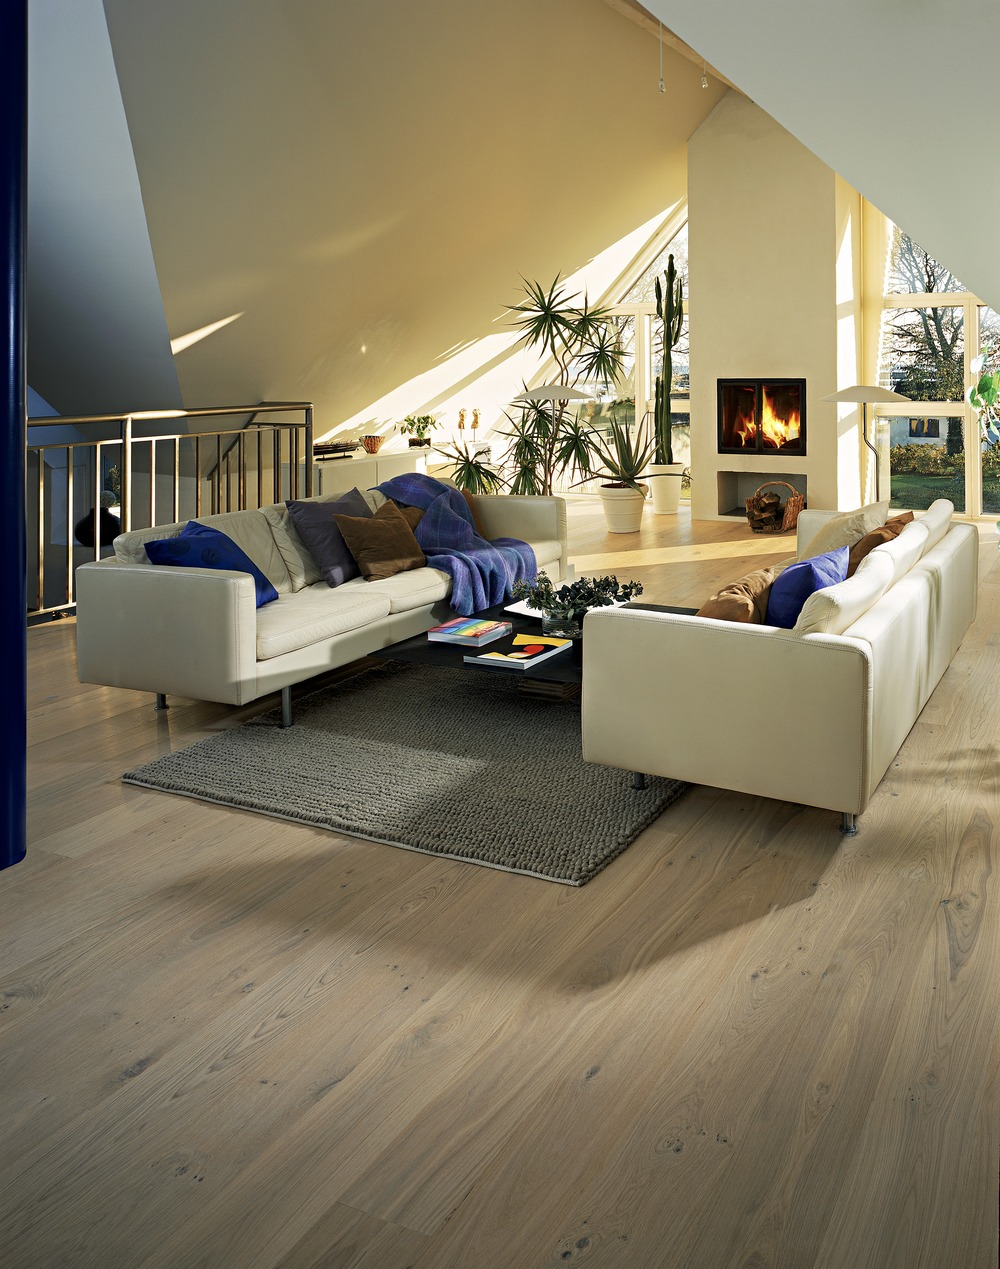 residential light wooden floor